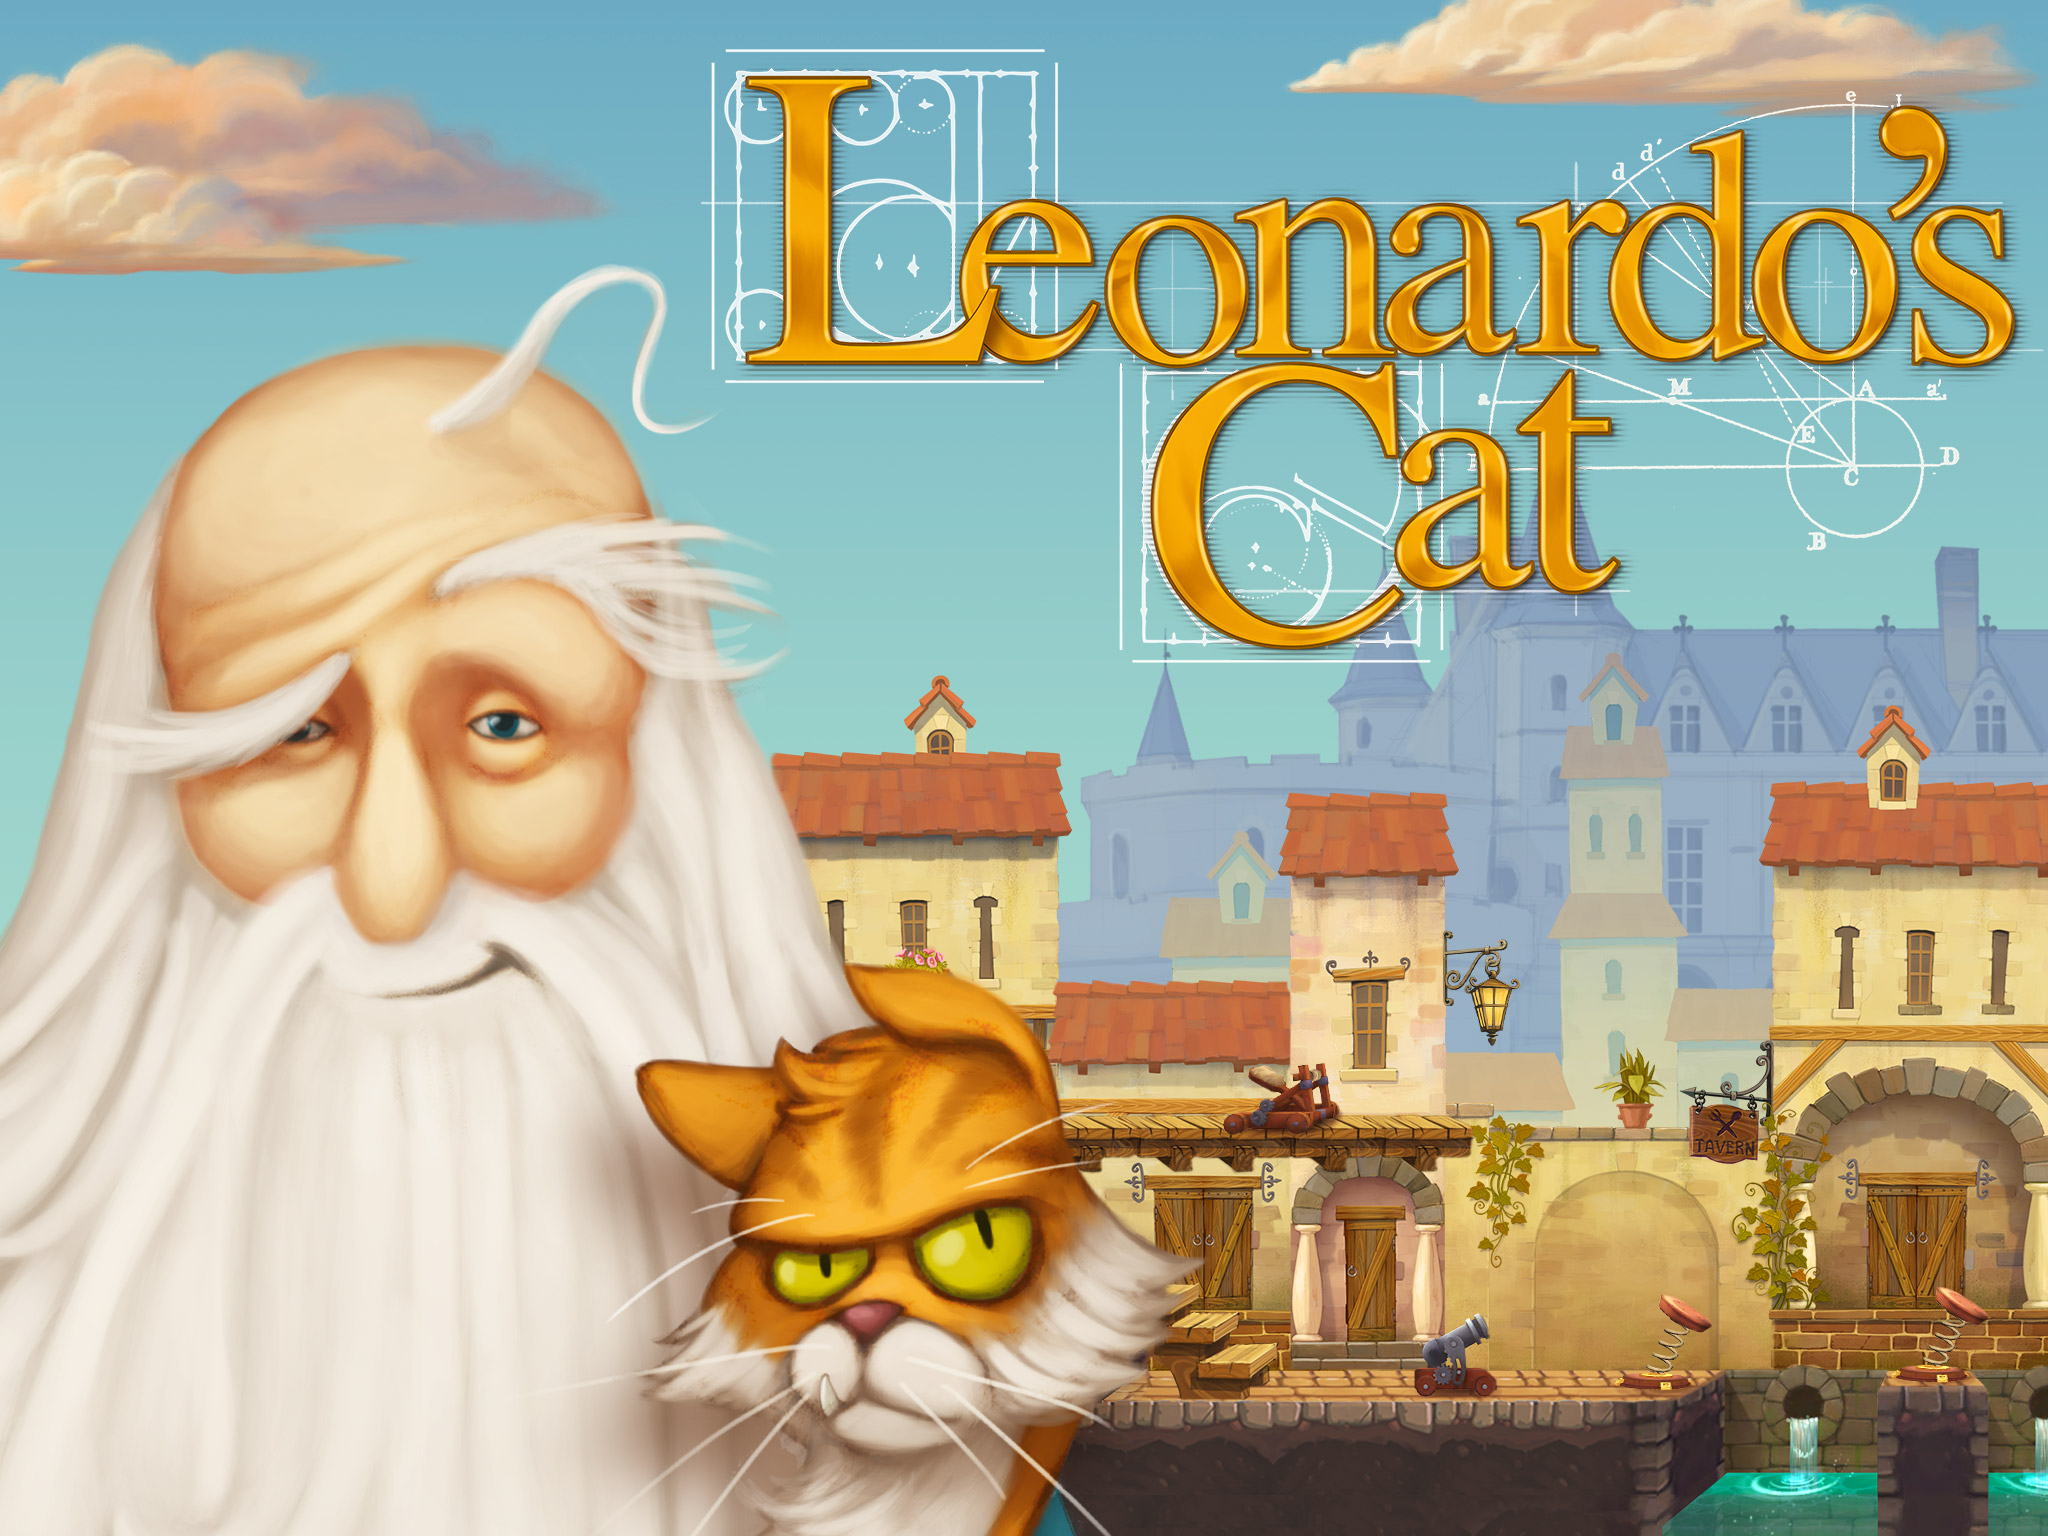 Leonardo's Cat will bring family fun in an invention puzzler